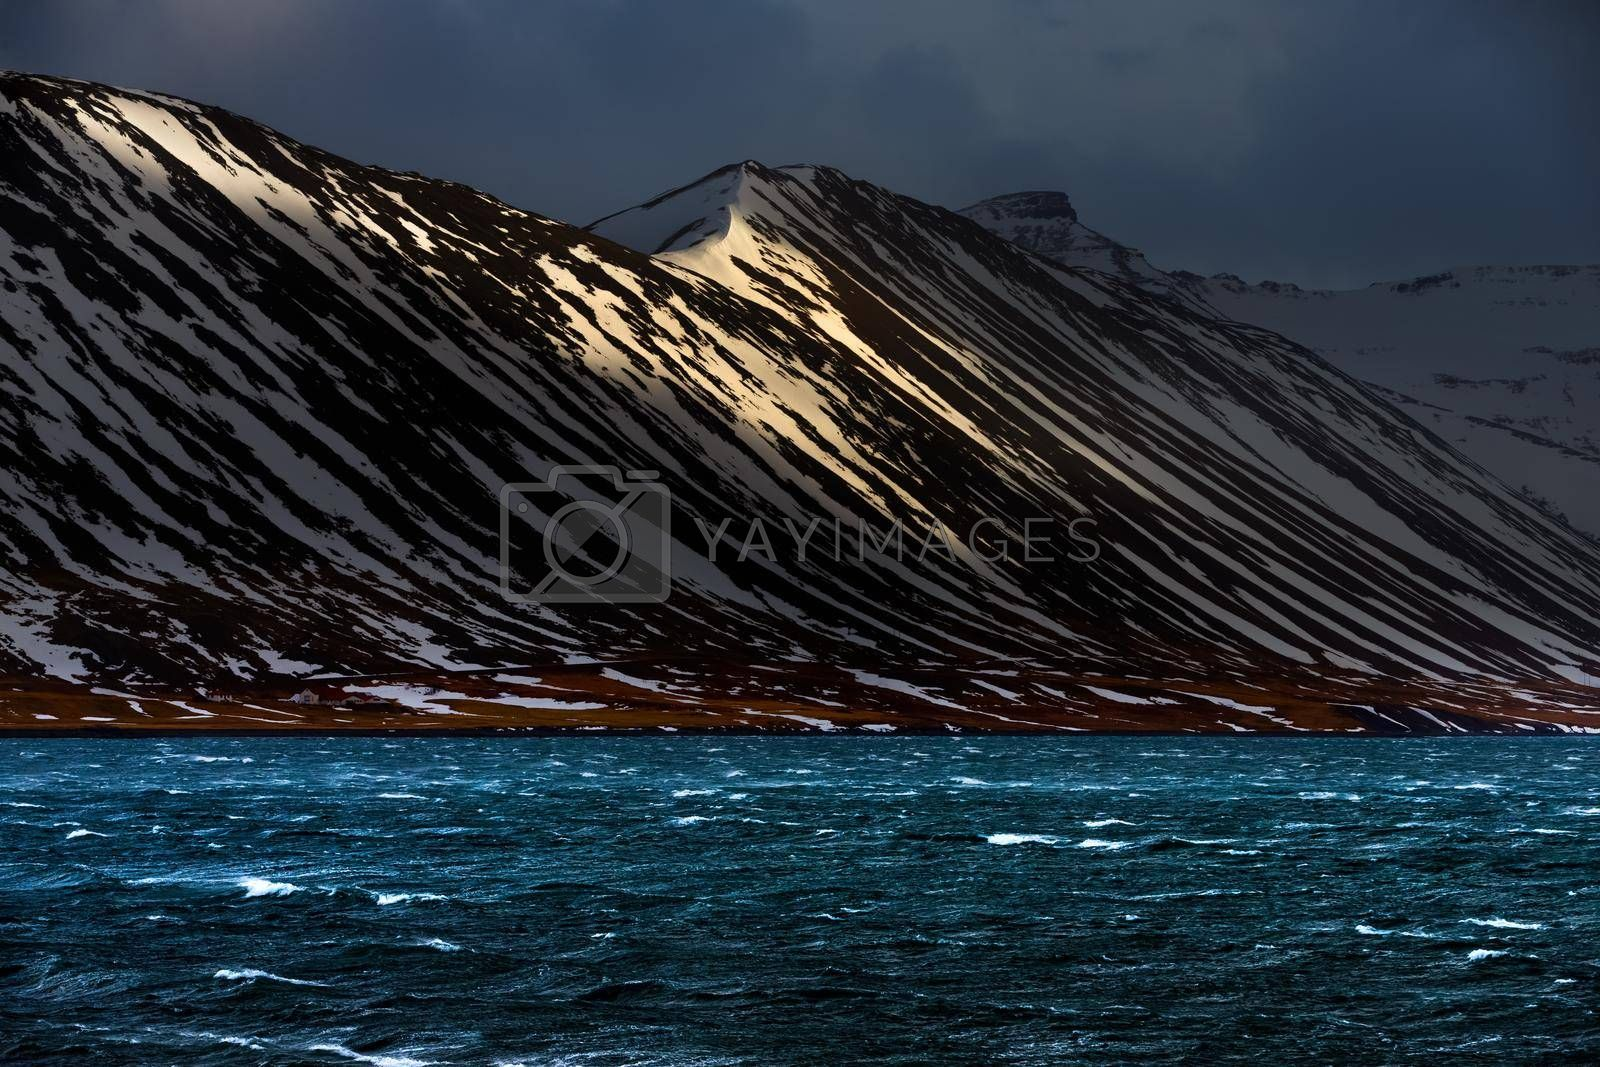 Gorgeous Landscape of a Snow-capped Mountains behind the River. Winter Cold Weather. Amazing Nature of Iceland.